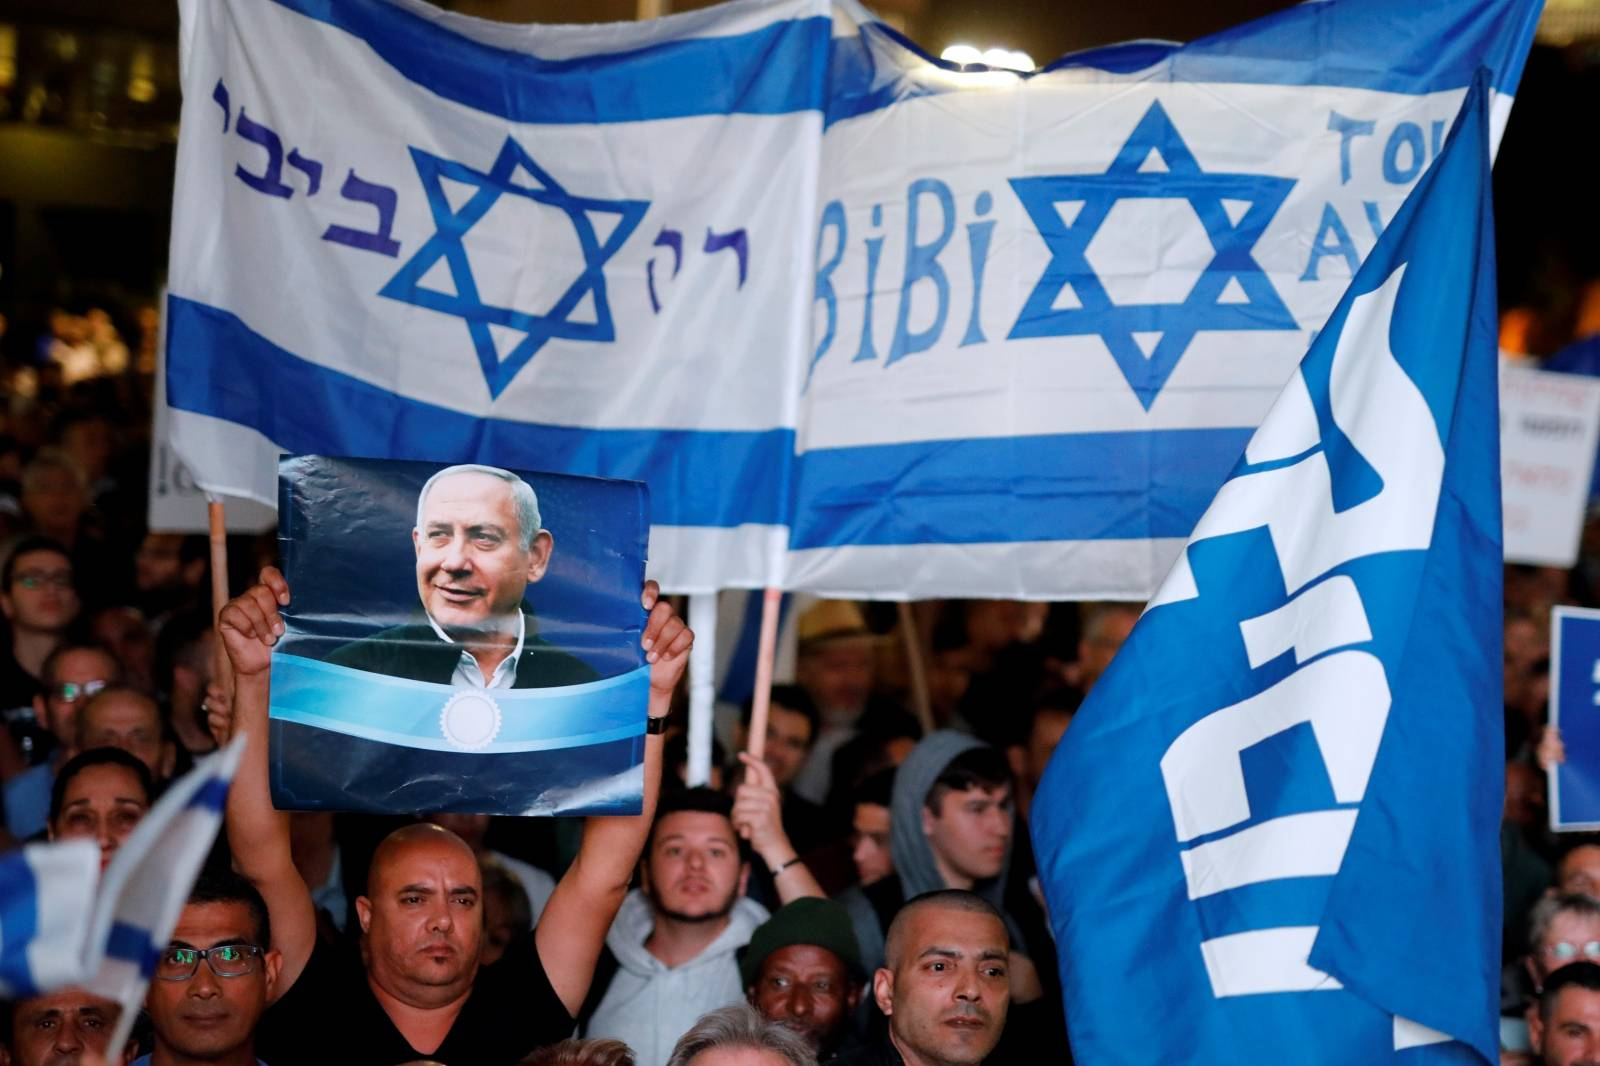 Supporters of Israeli Prime Minister Benjamin Netanyahu take part in a protest supporting Netanyahu after he was charged in corruption cases, in Tel Aviv, Israel